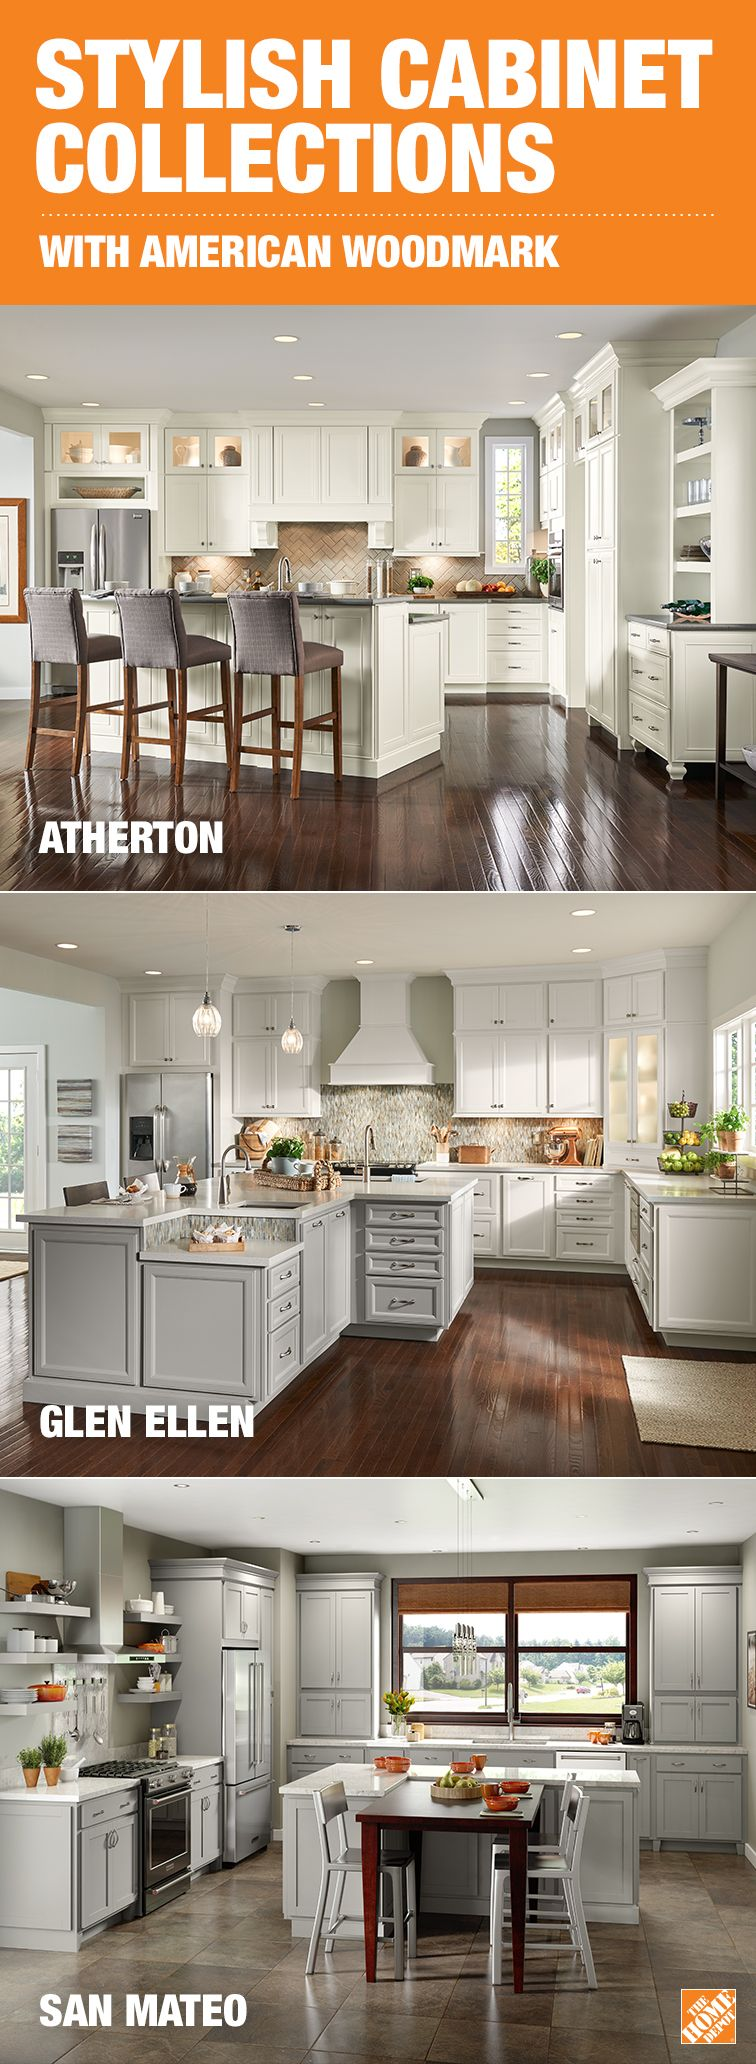 Durable cabinets three smart collections american woodmark